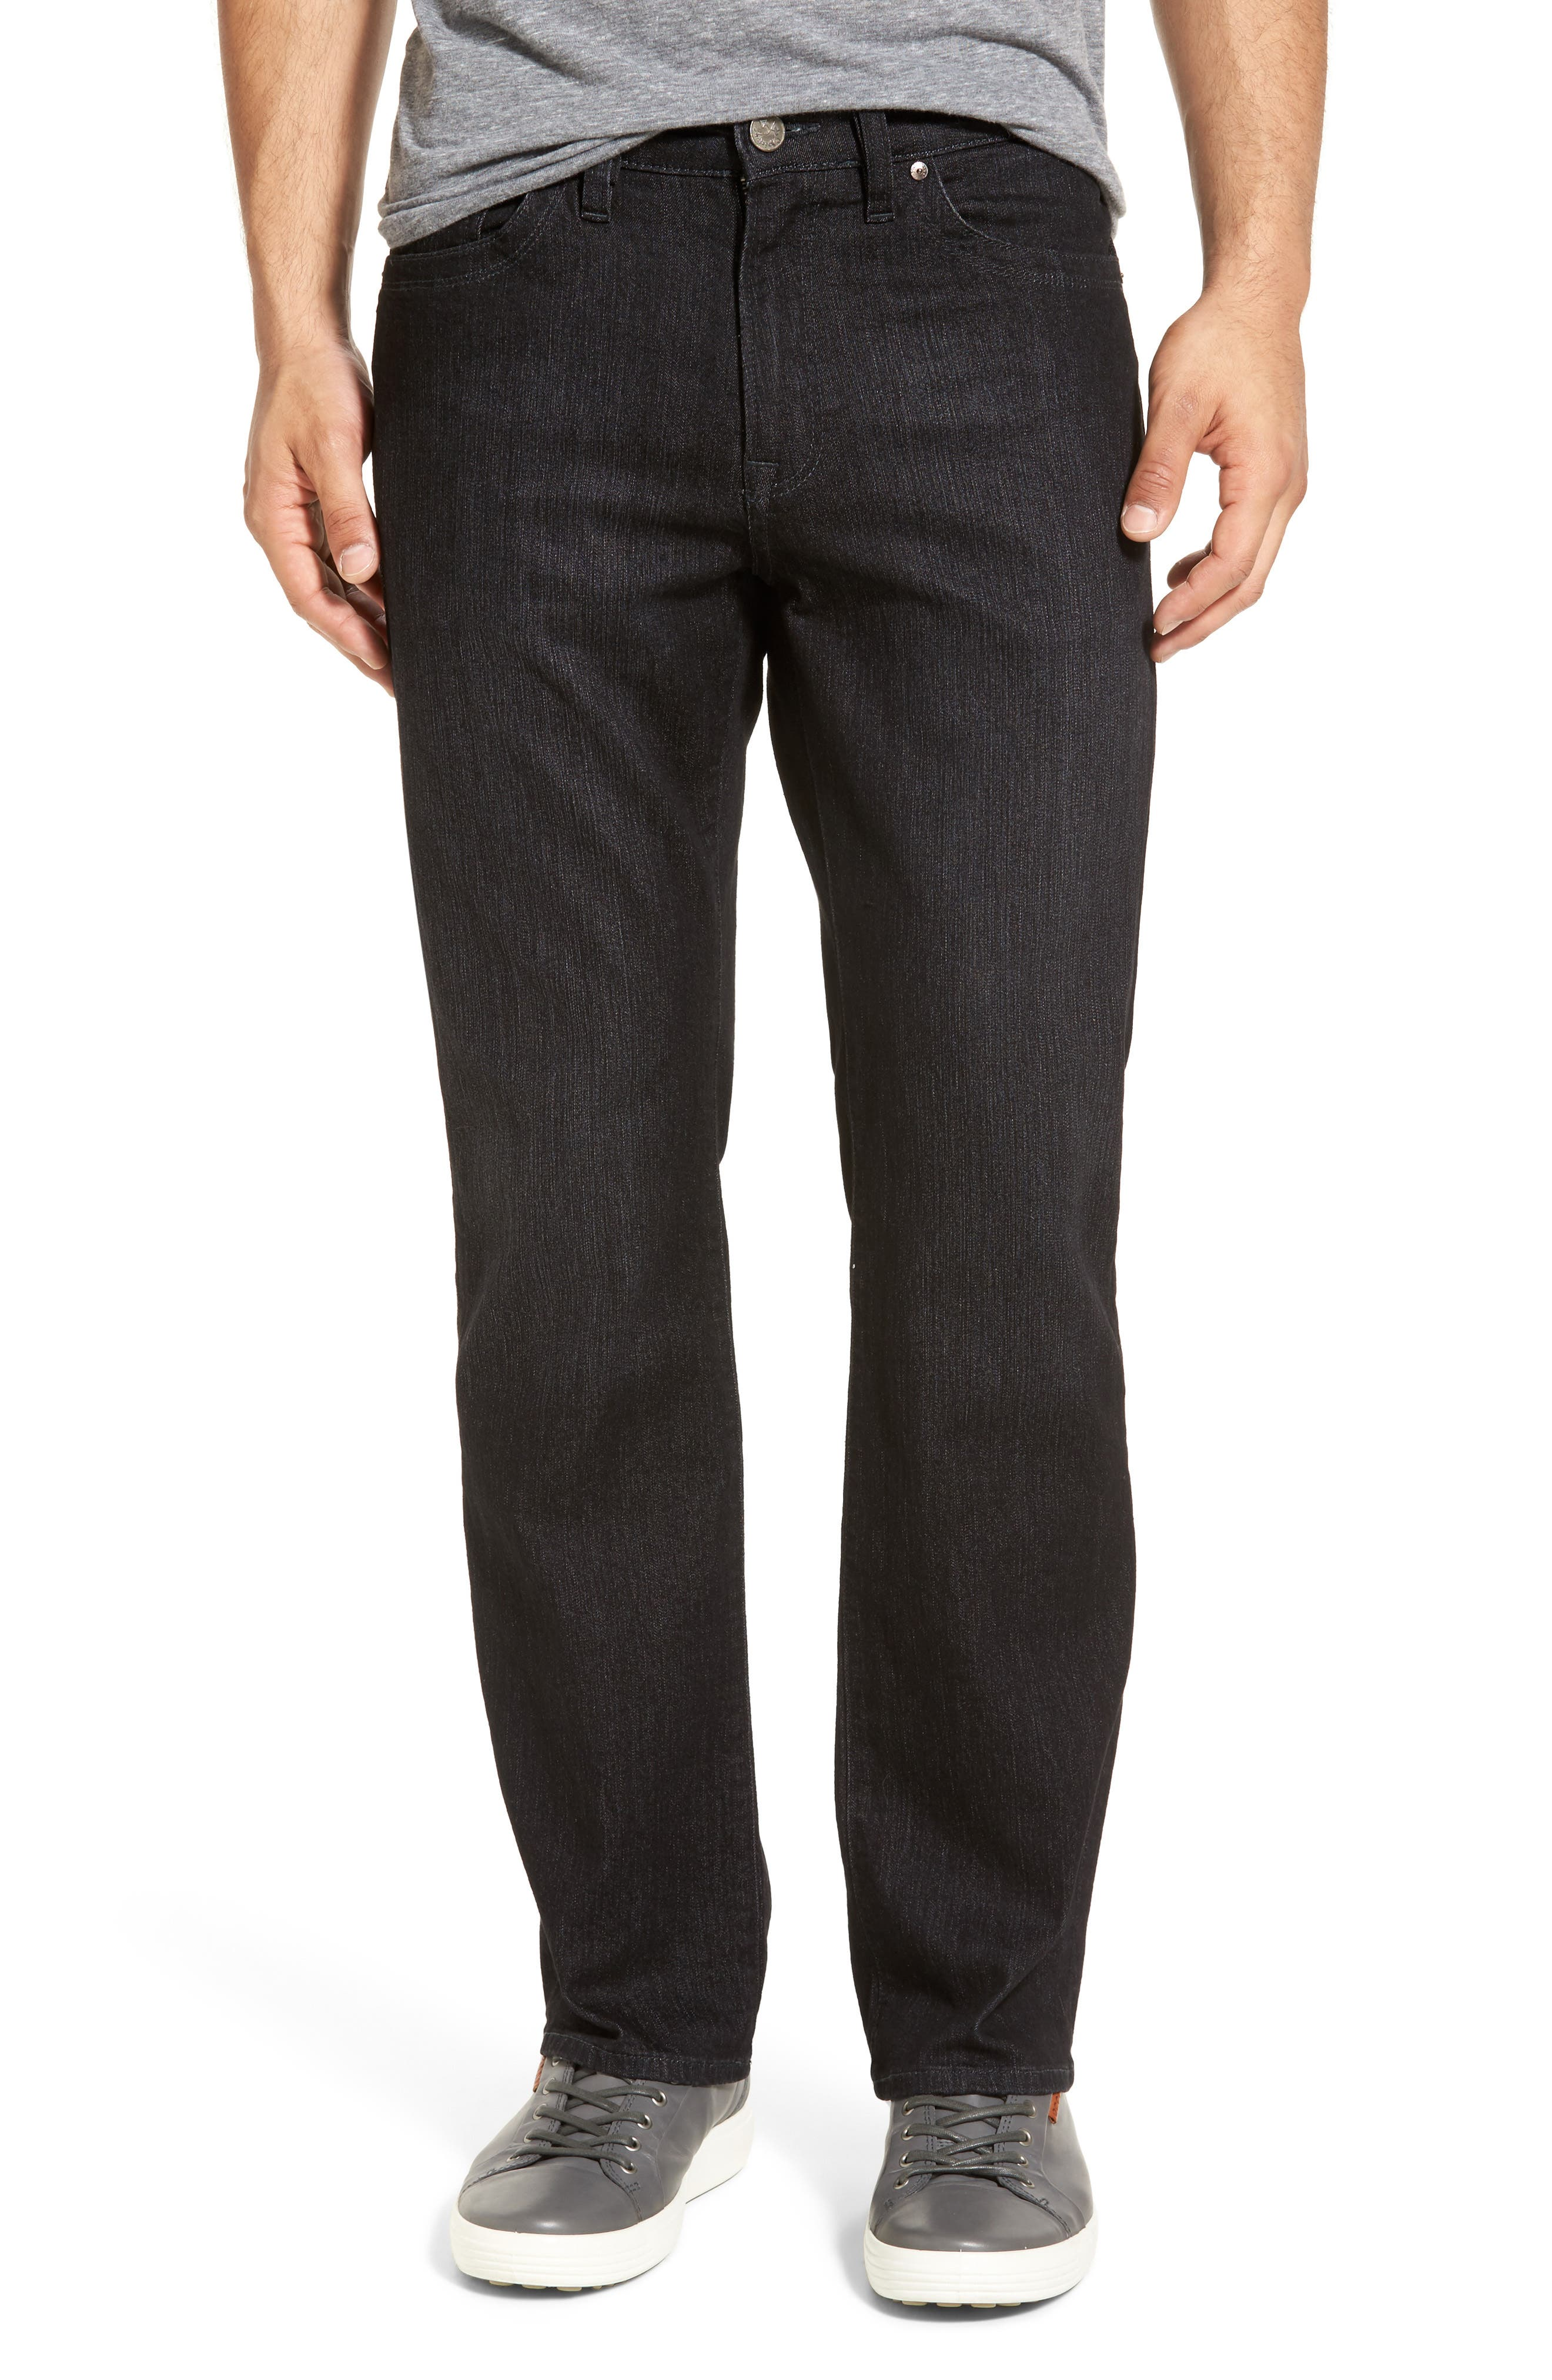 34 HERITAGE 'Charisma' Classic Relaxed Fit, Main, color, CHARCOAL